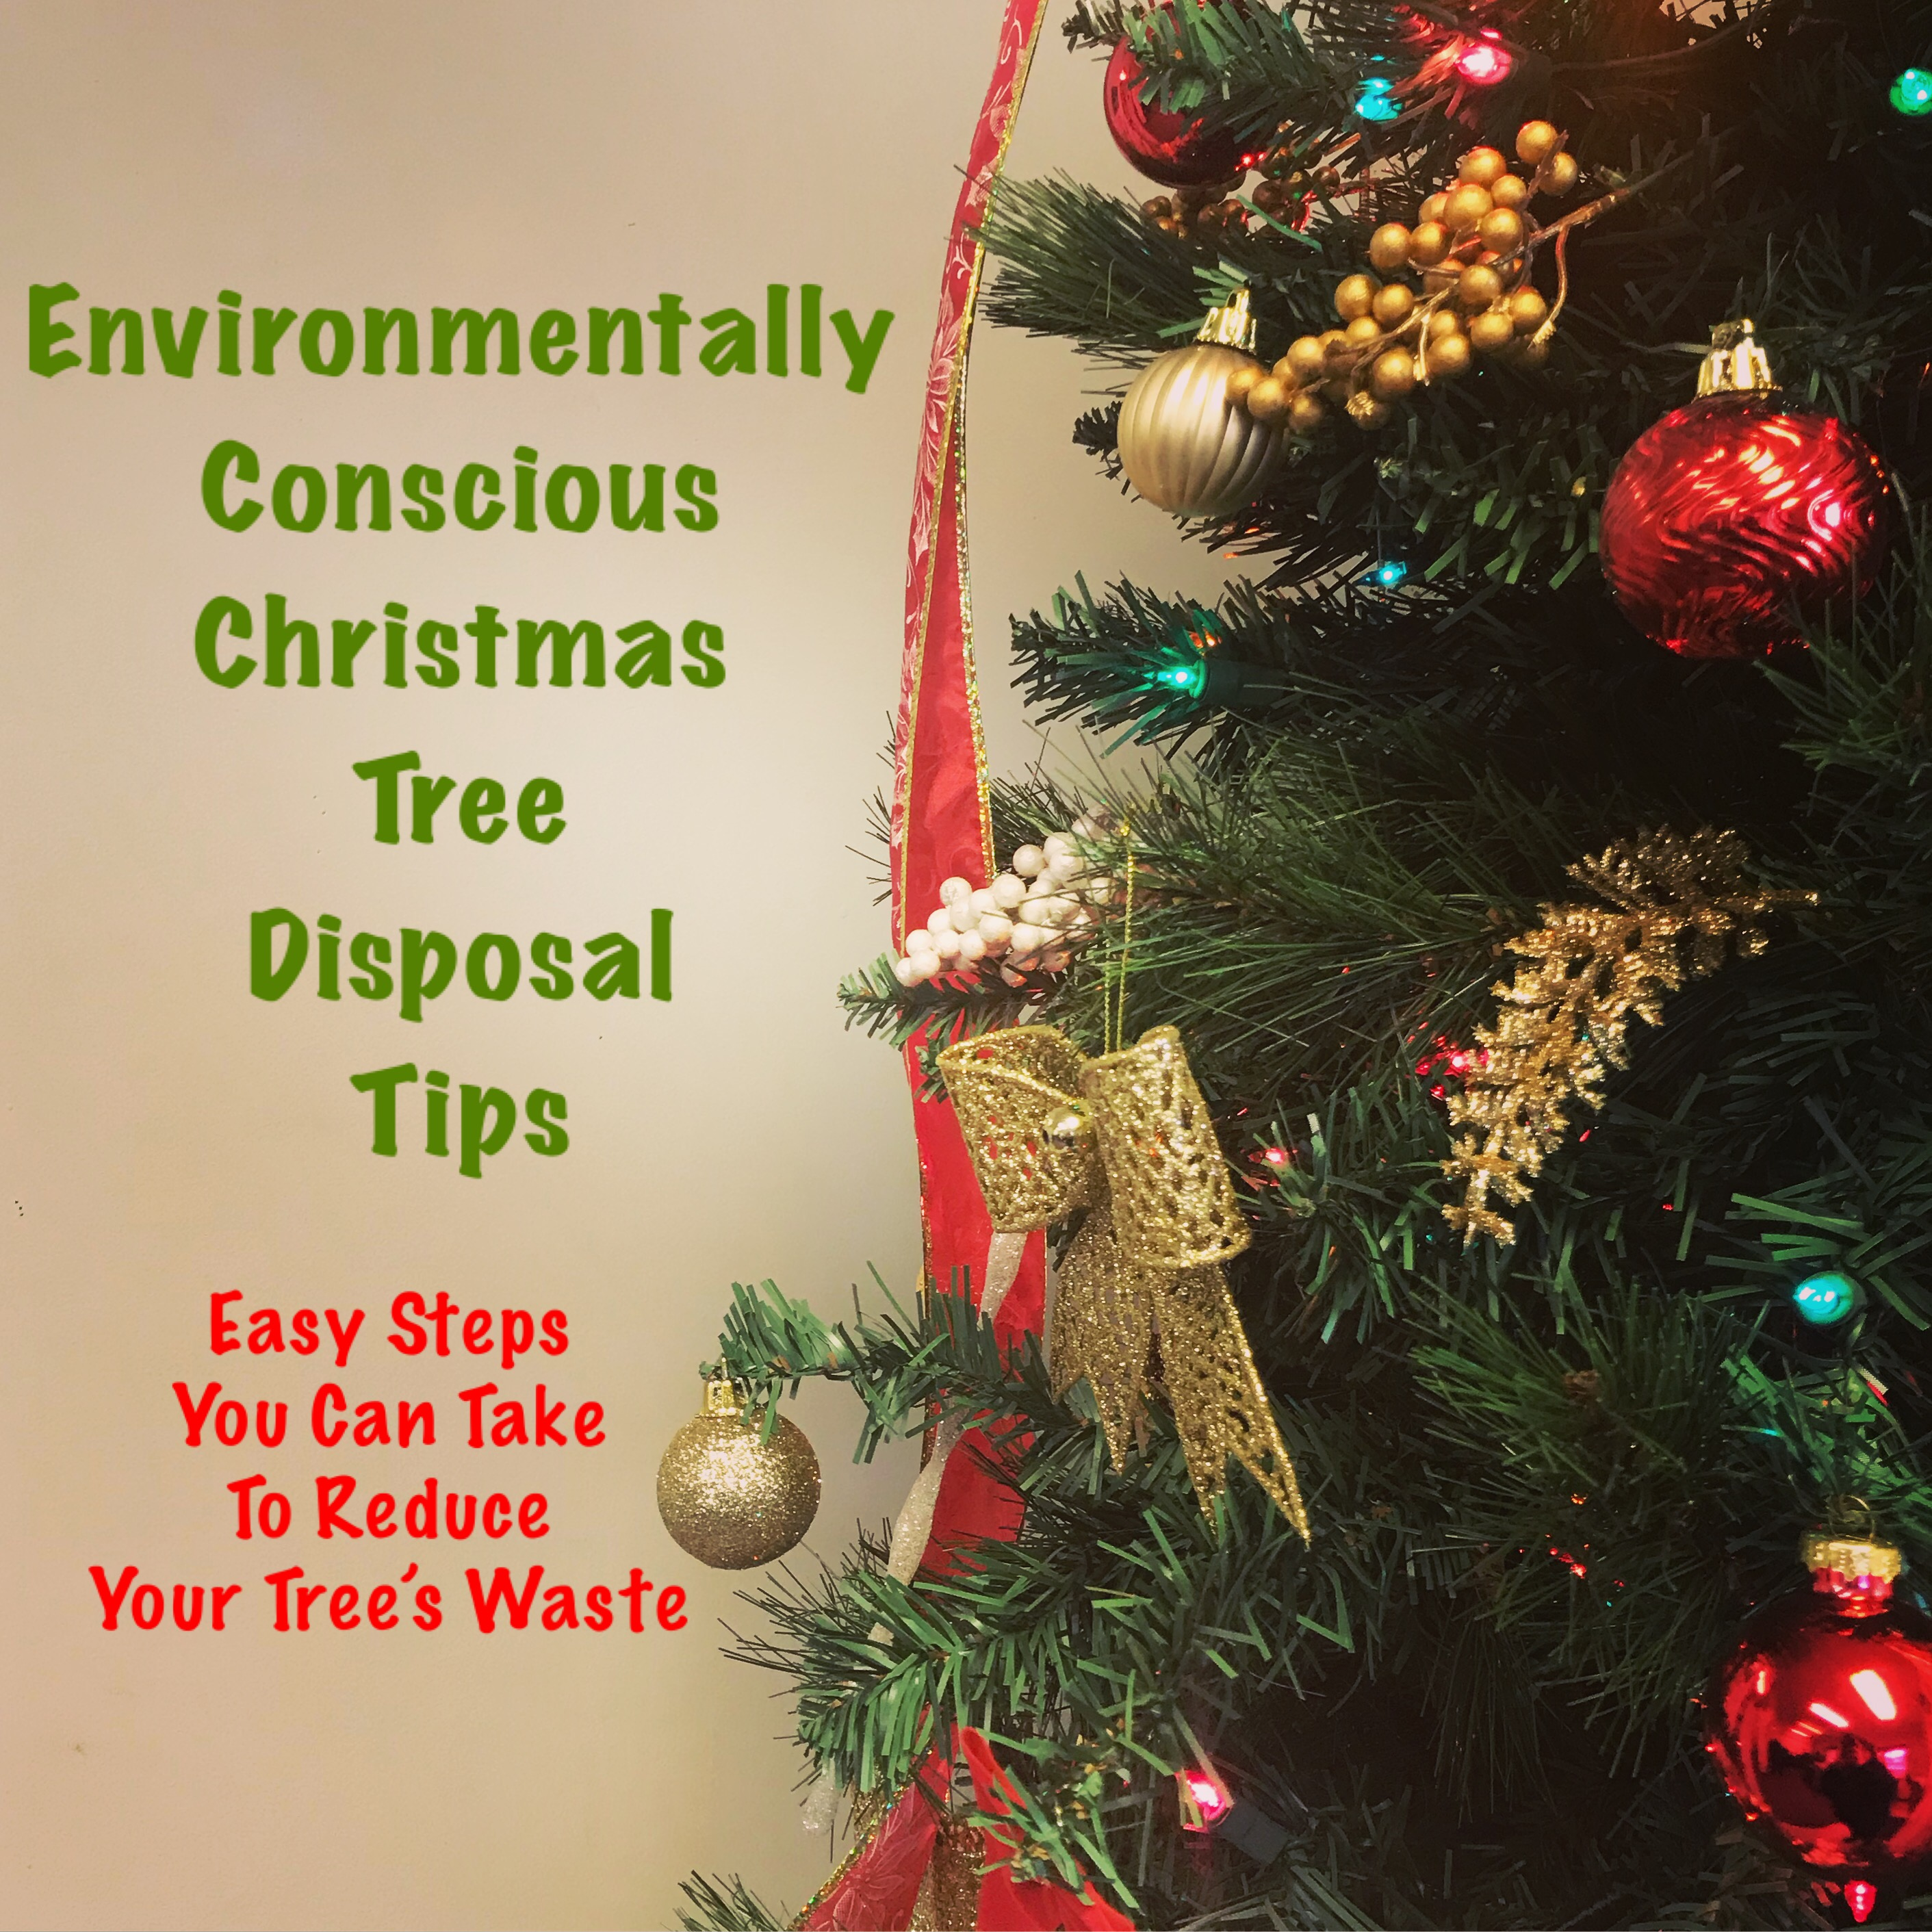 Disposing Of Christmas Trees: Environmentally Conscious Christmas Tree Disposal Tips